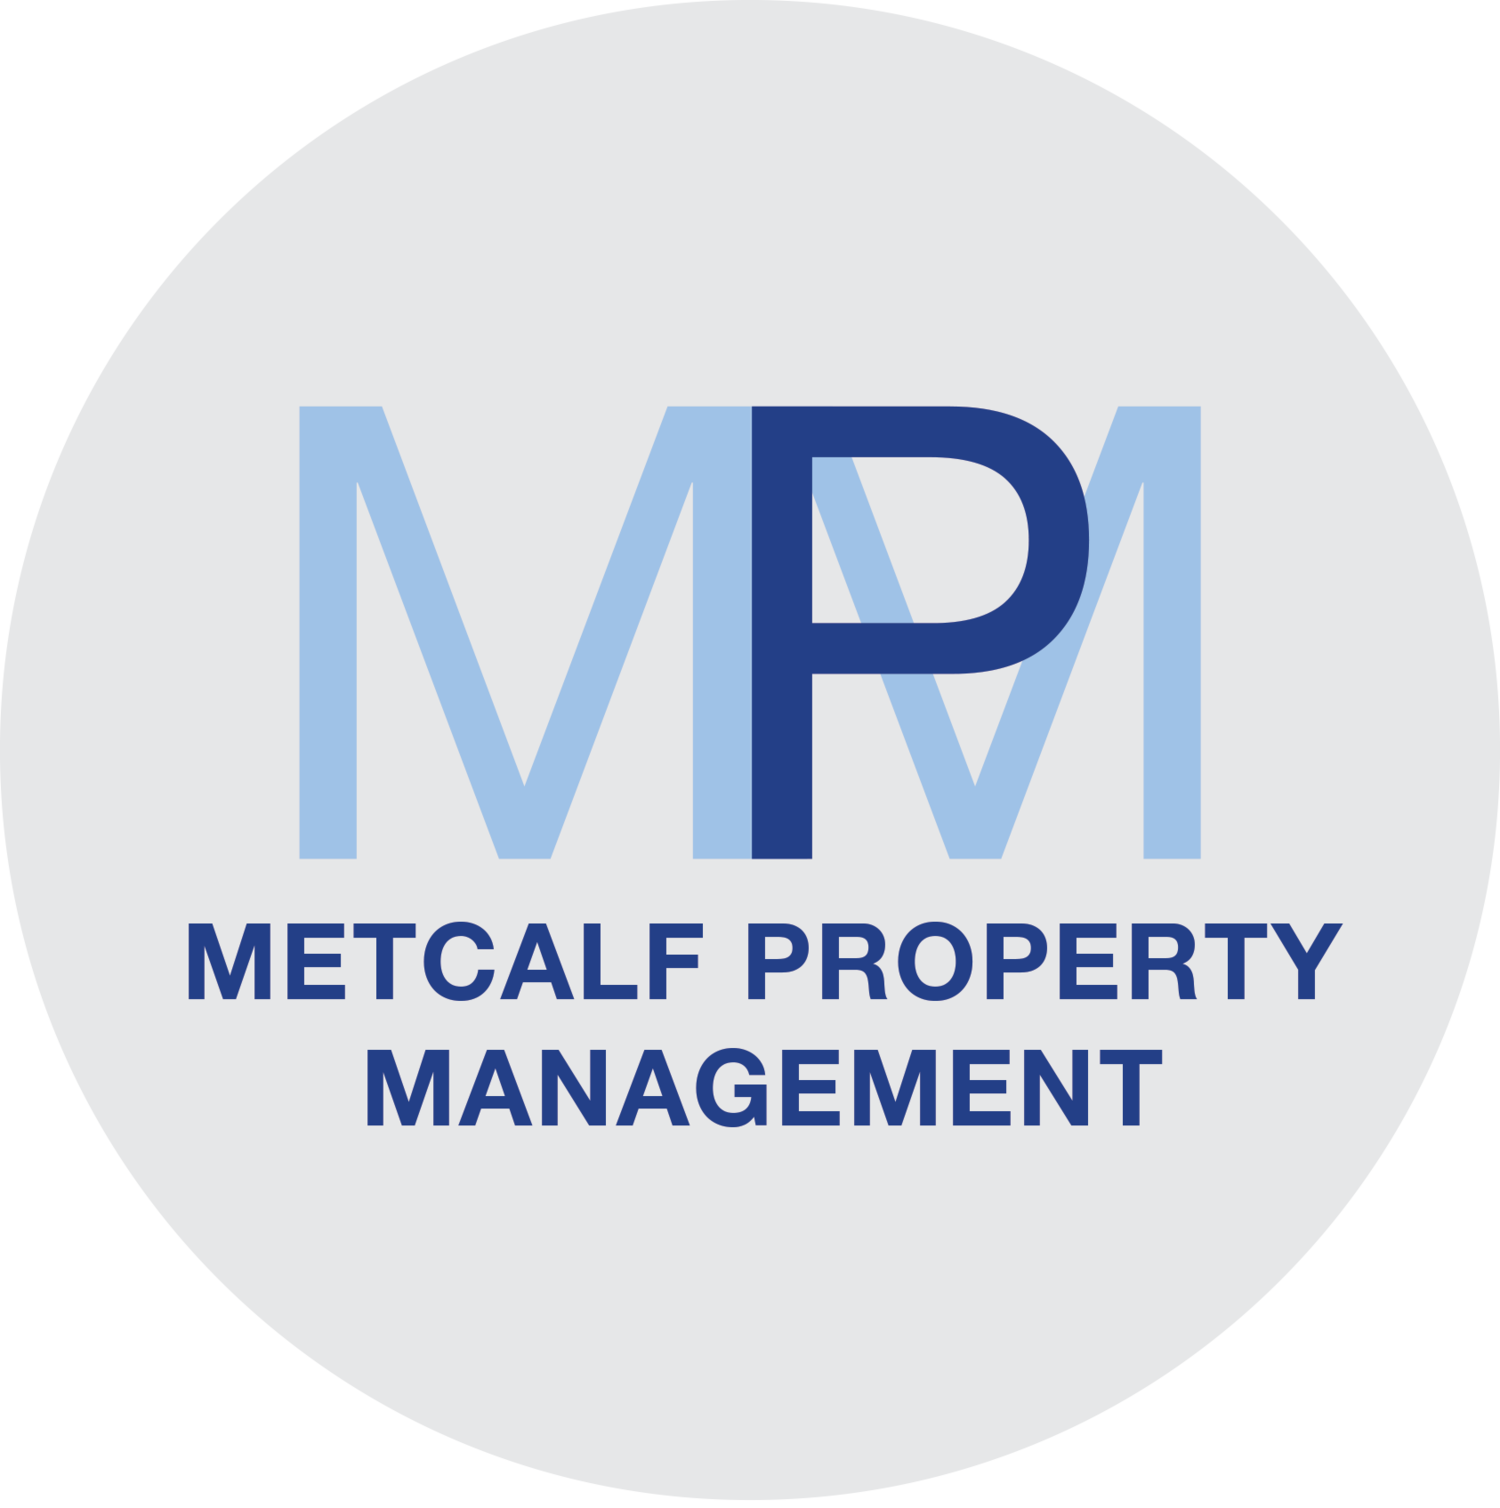 Metcalf Property Management